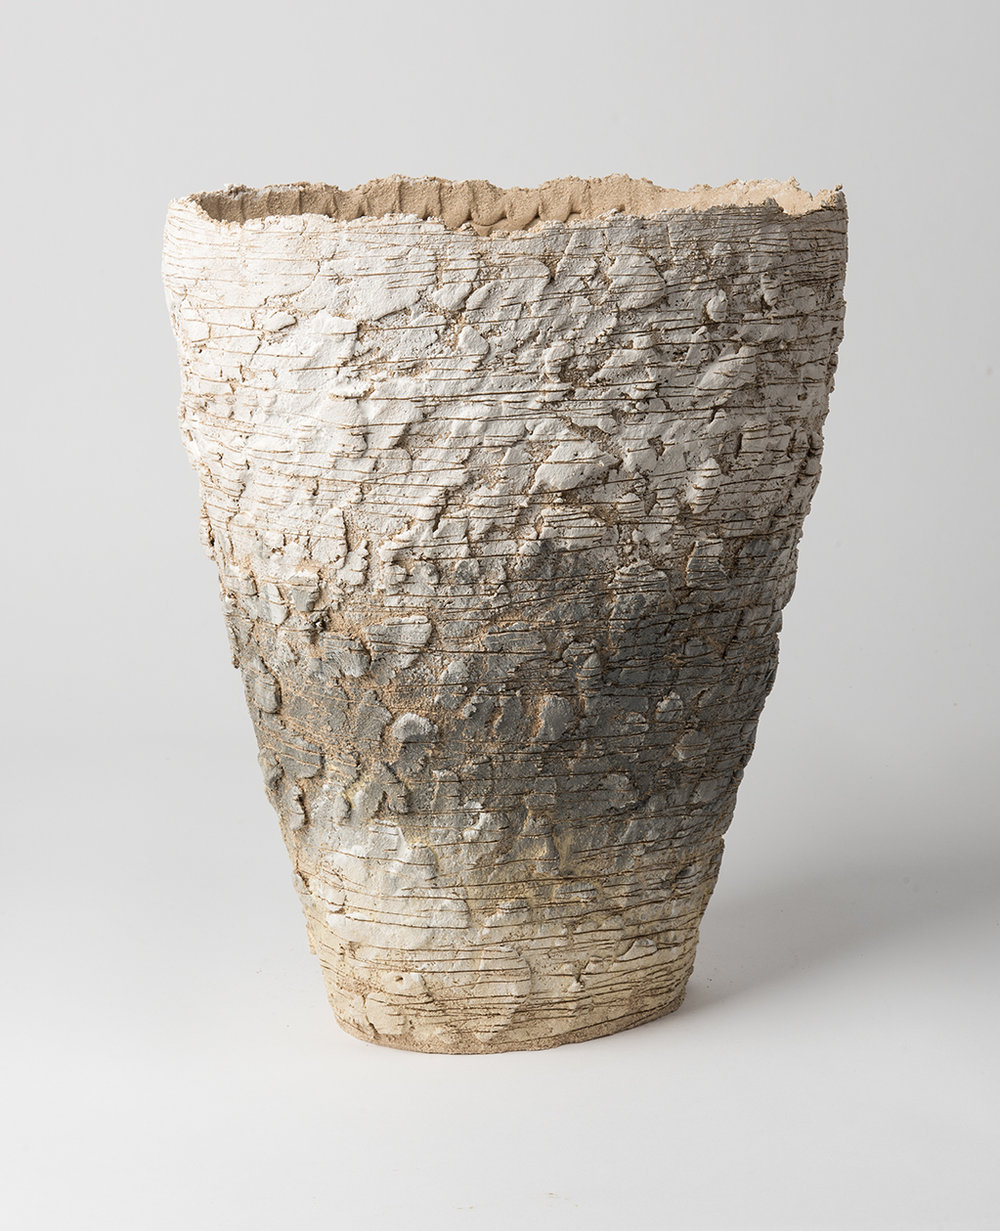 5. SOLD Sarah Purvey Landscape Series Wave 34cmH x 28cmW x 29cmD £725.00.jpg